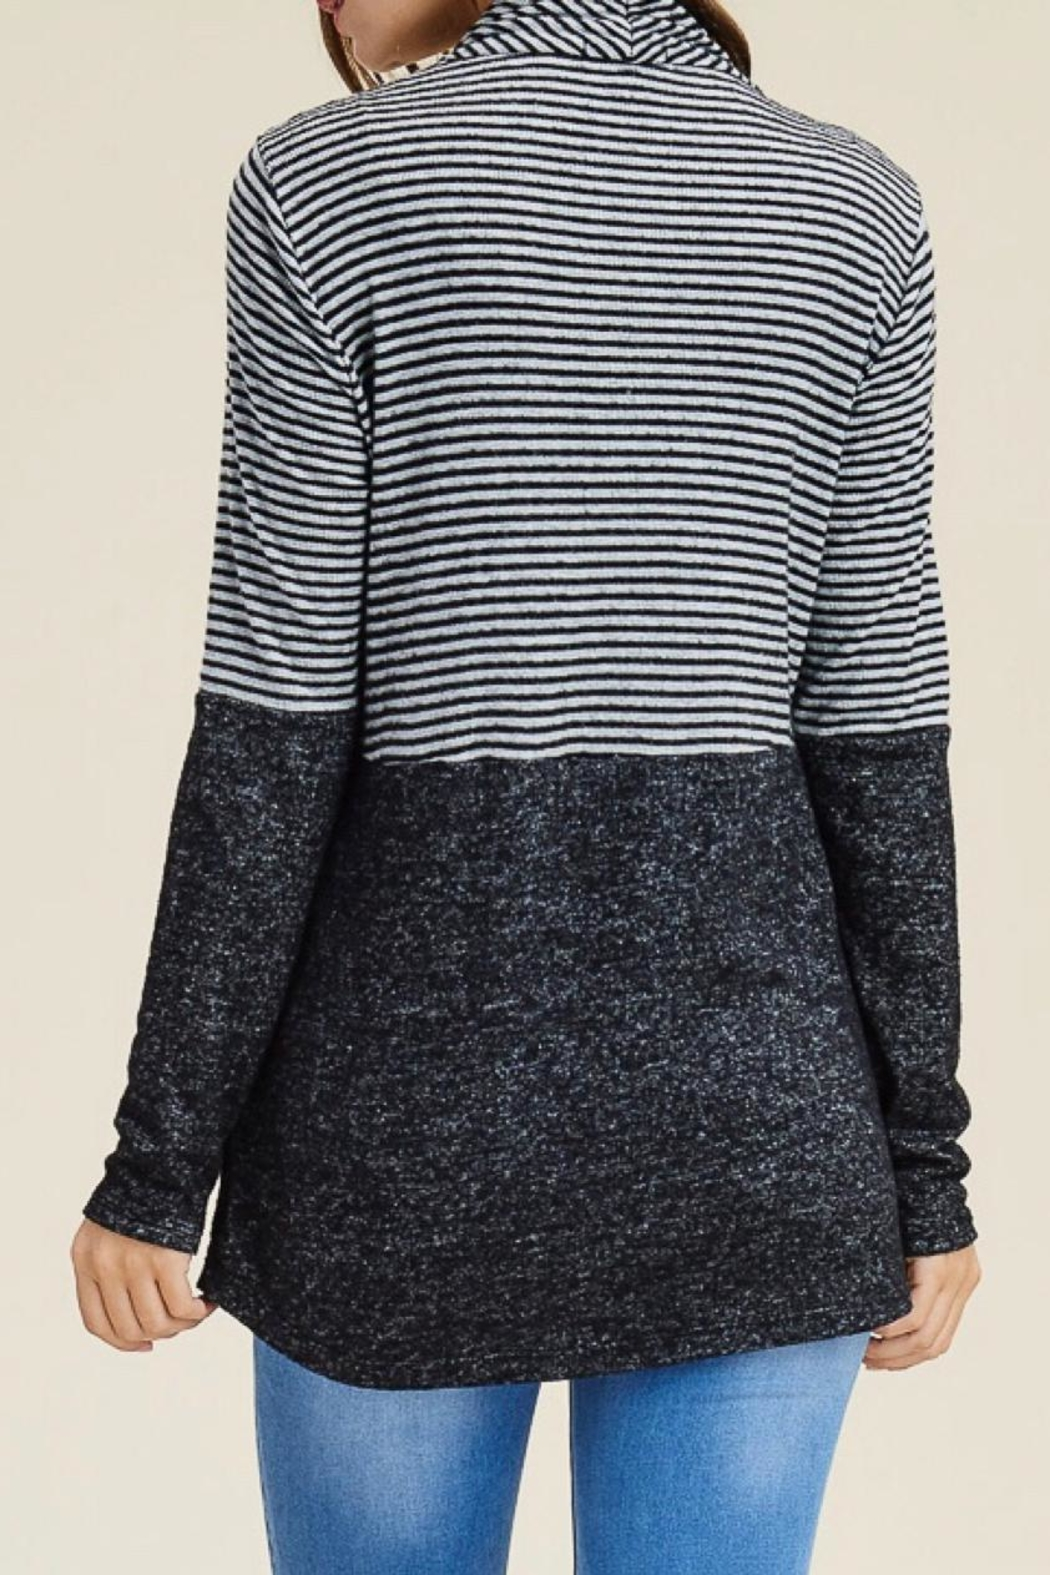 LuLu's Boutique Striped Open Cardigan - Back Cropped Image